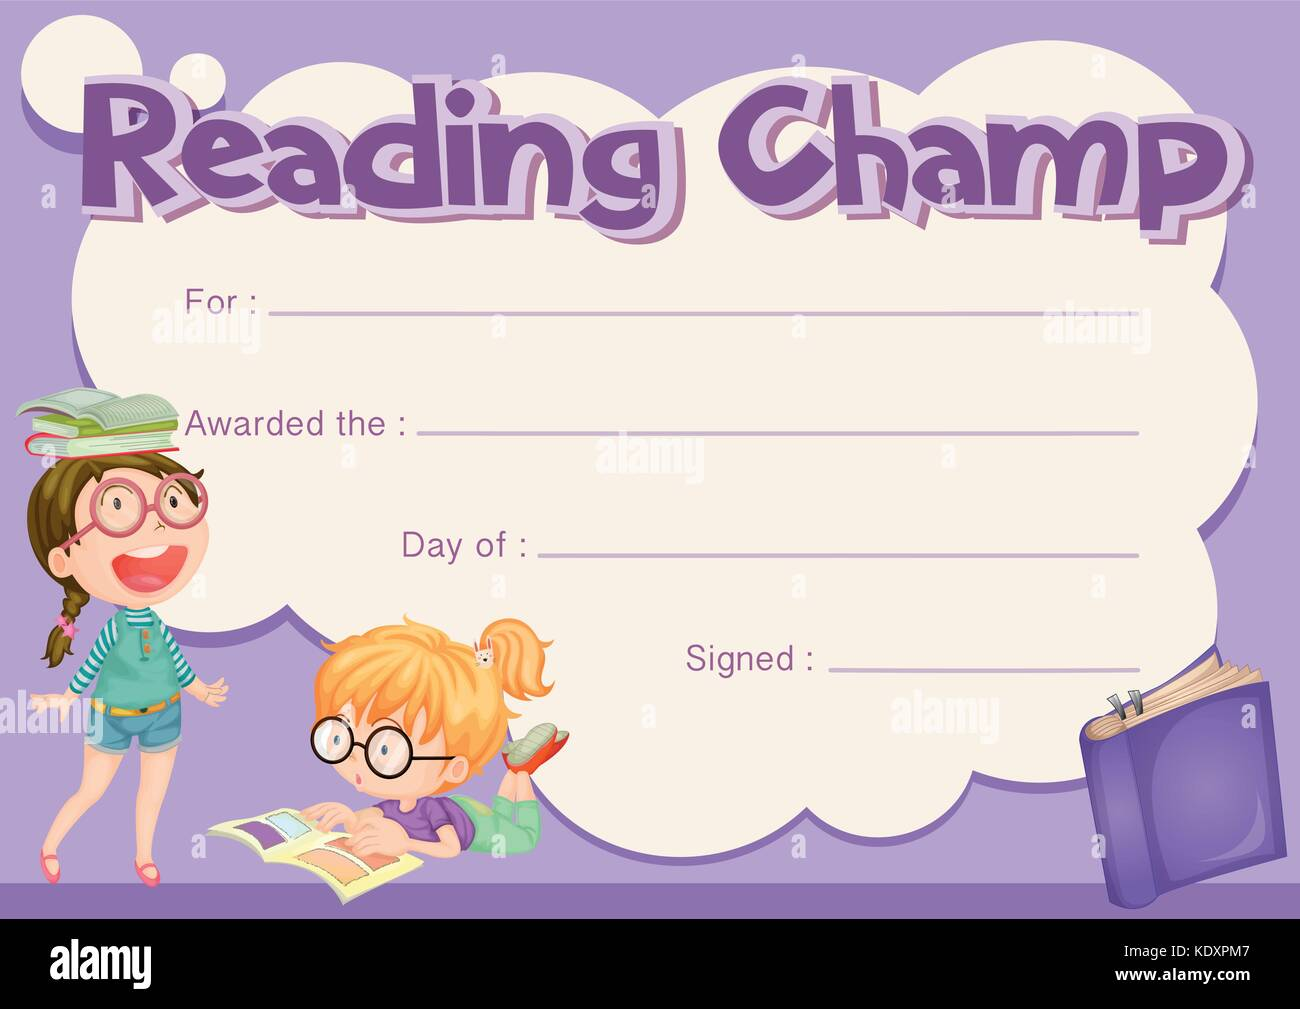 Certificate template for reading champ with purple background stock certificate template for reading champ with purple background illustration yadclub Choice Image